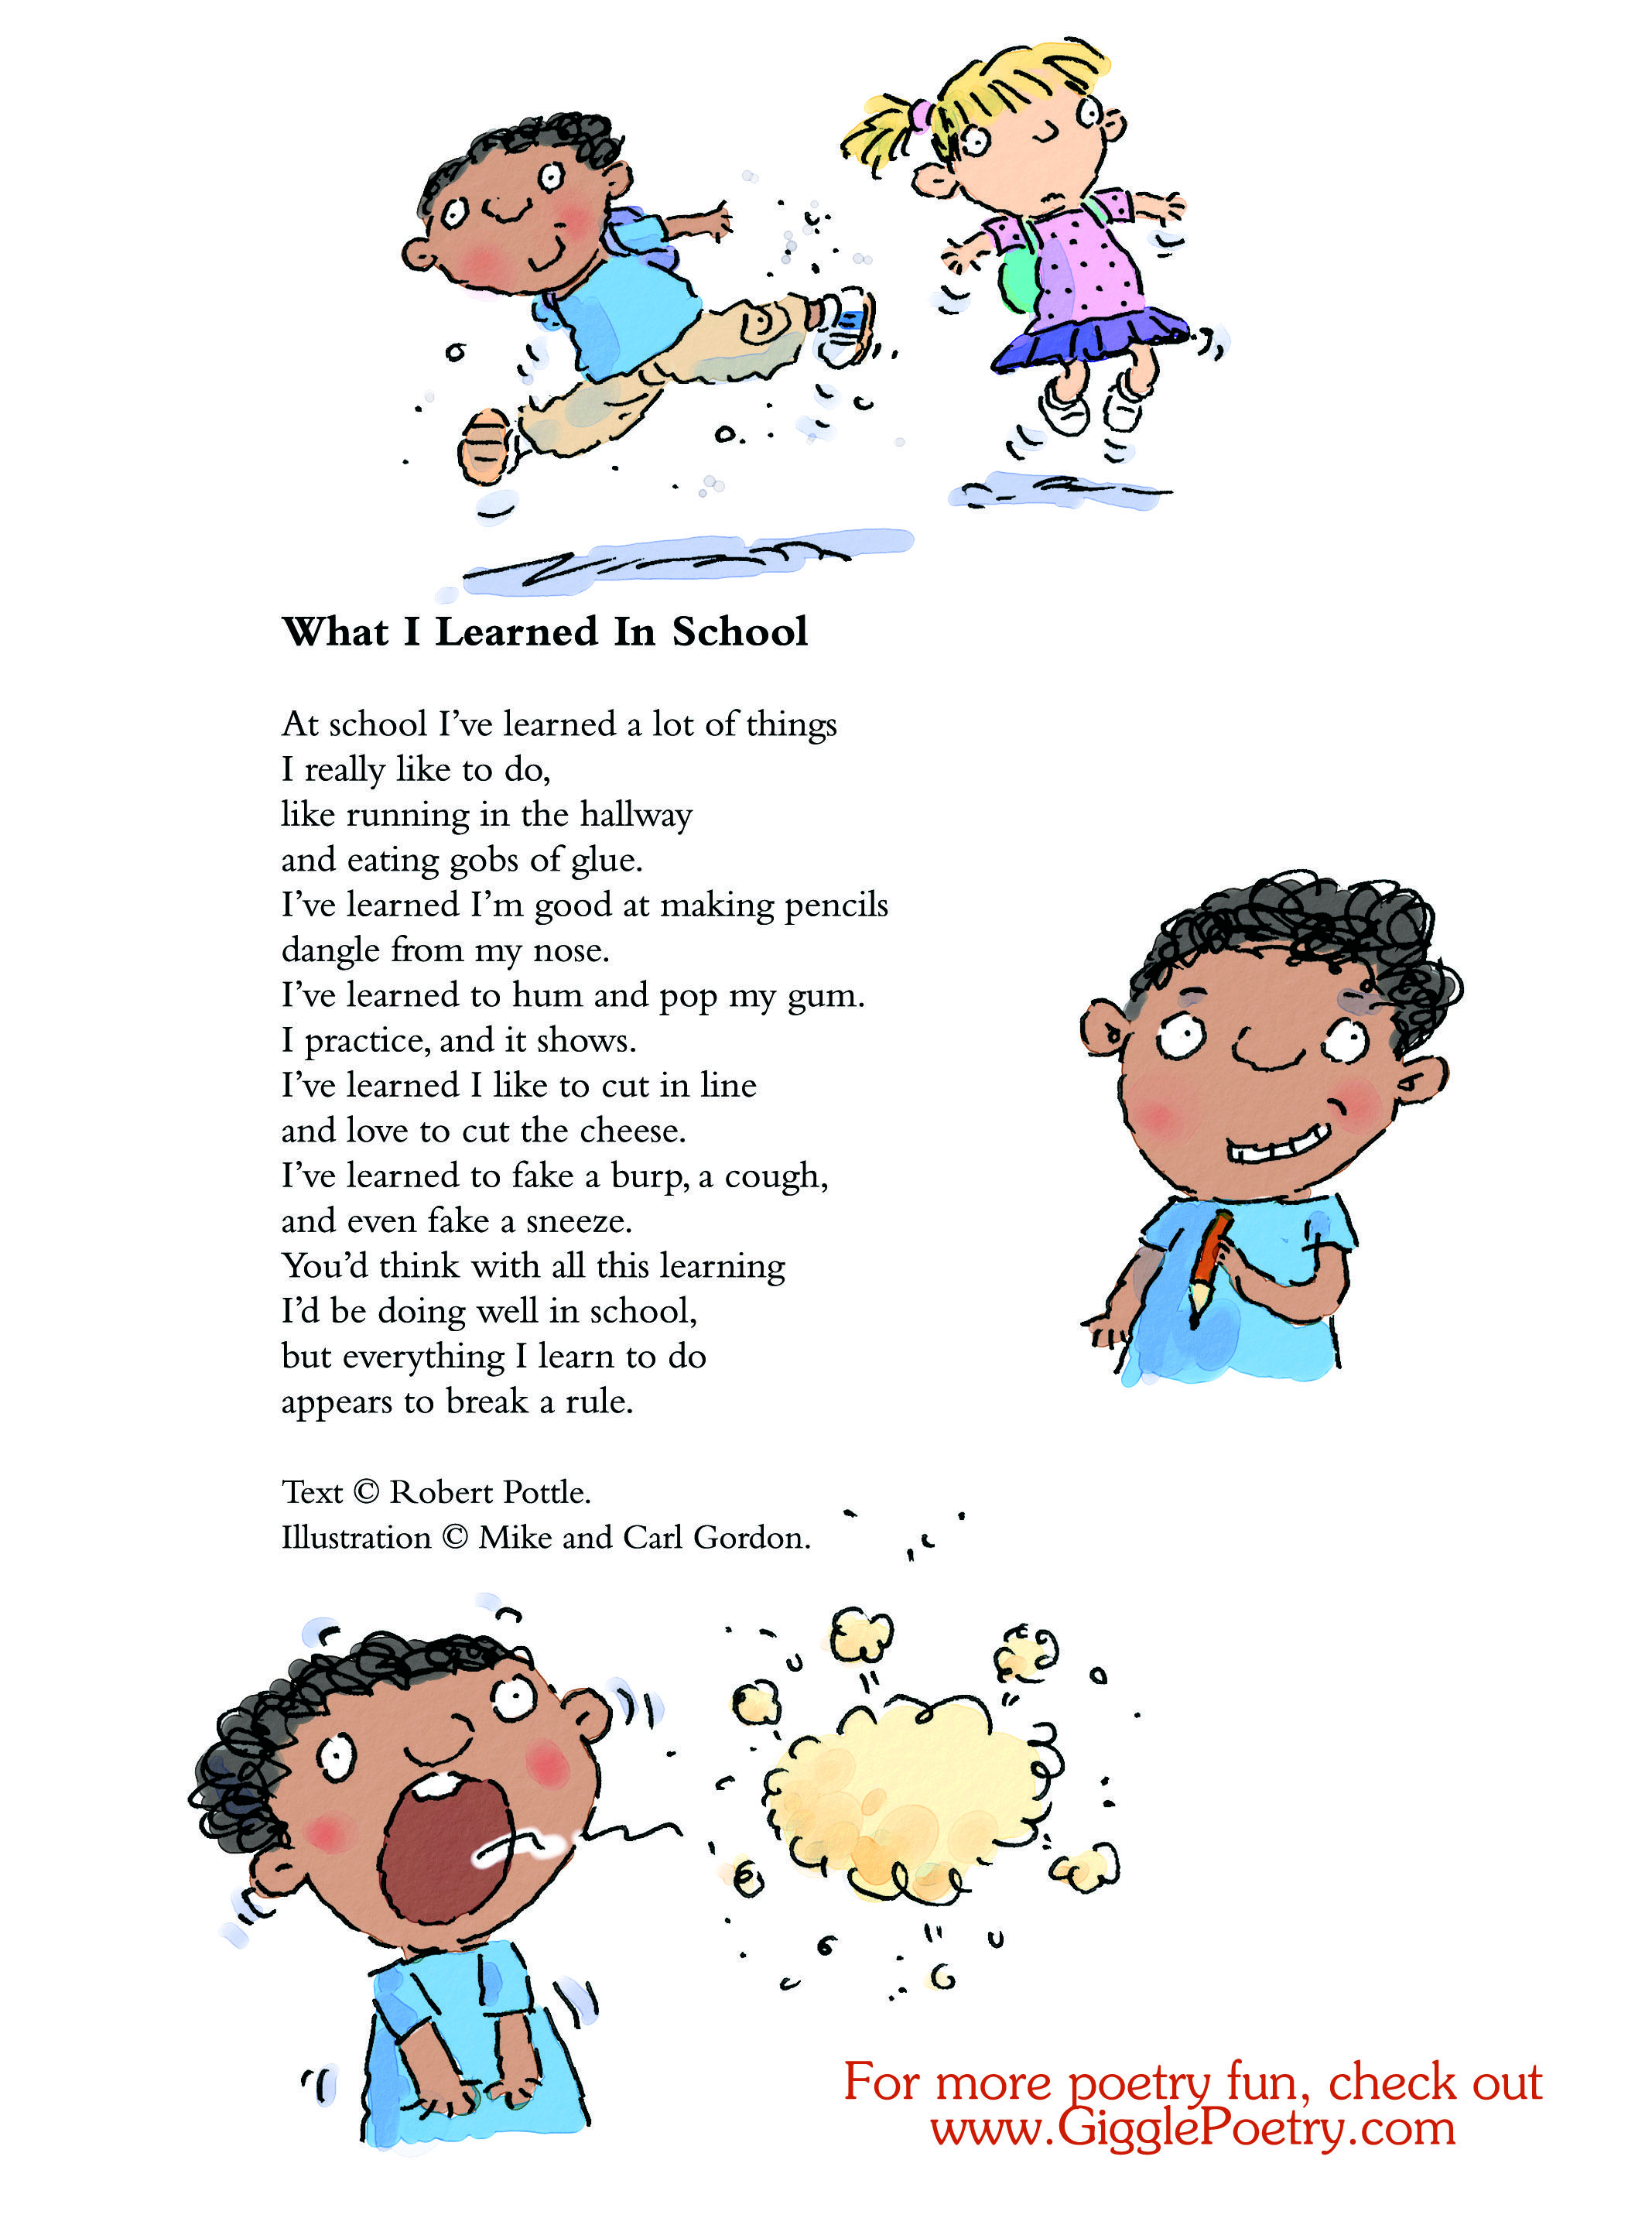 What I Learned In School A Poem By Robert Pottle